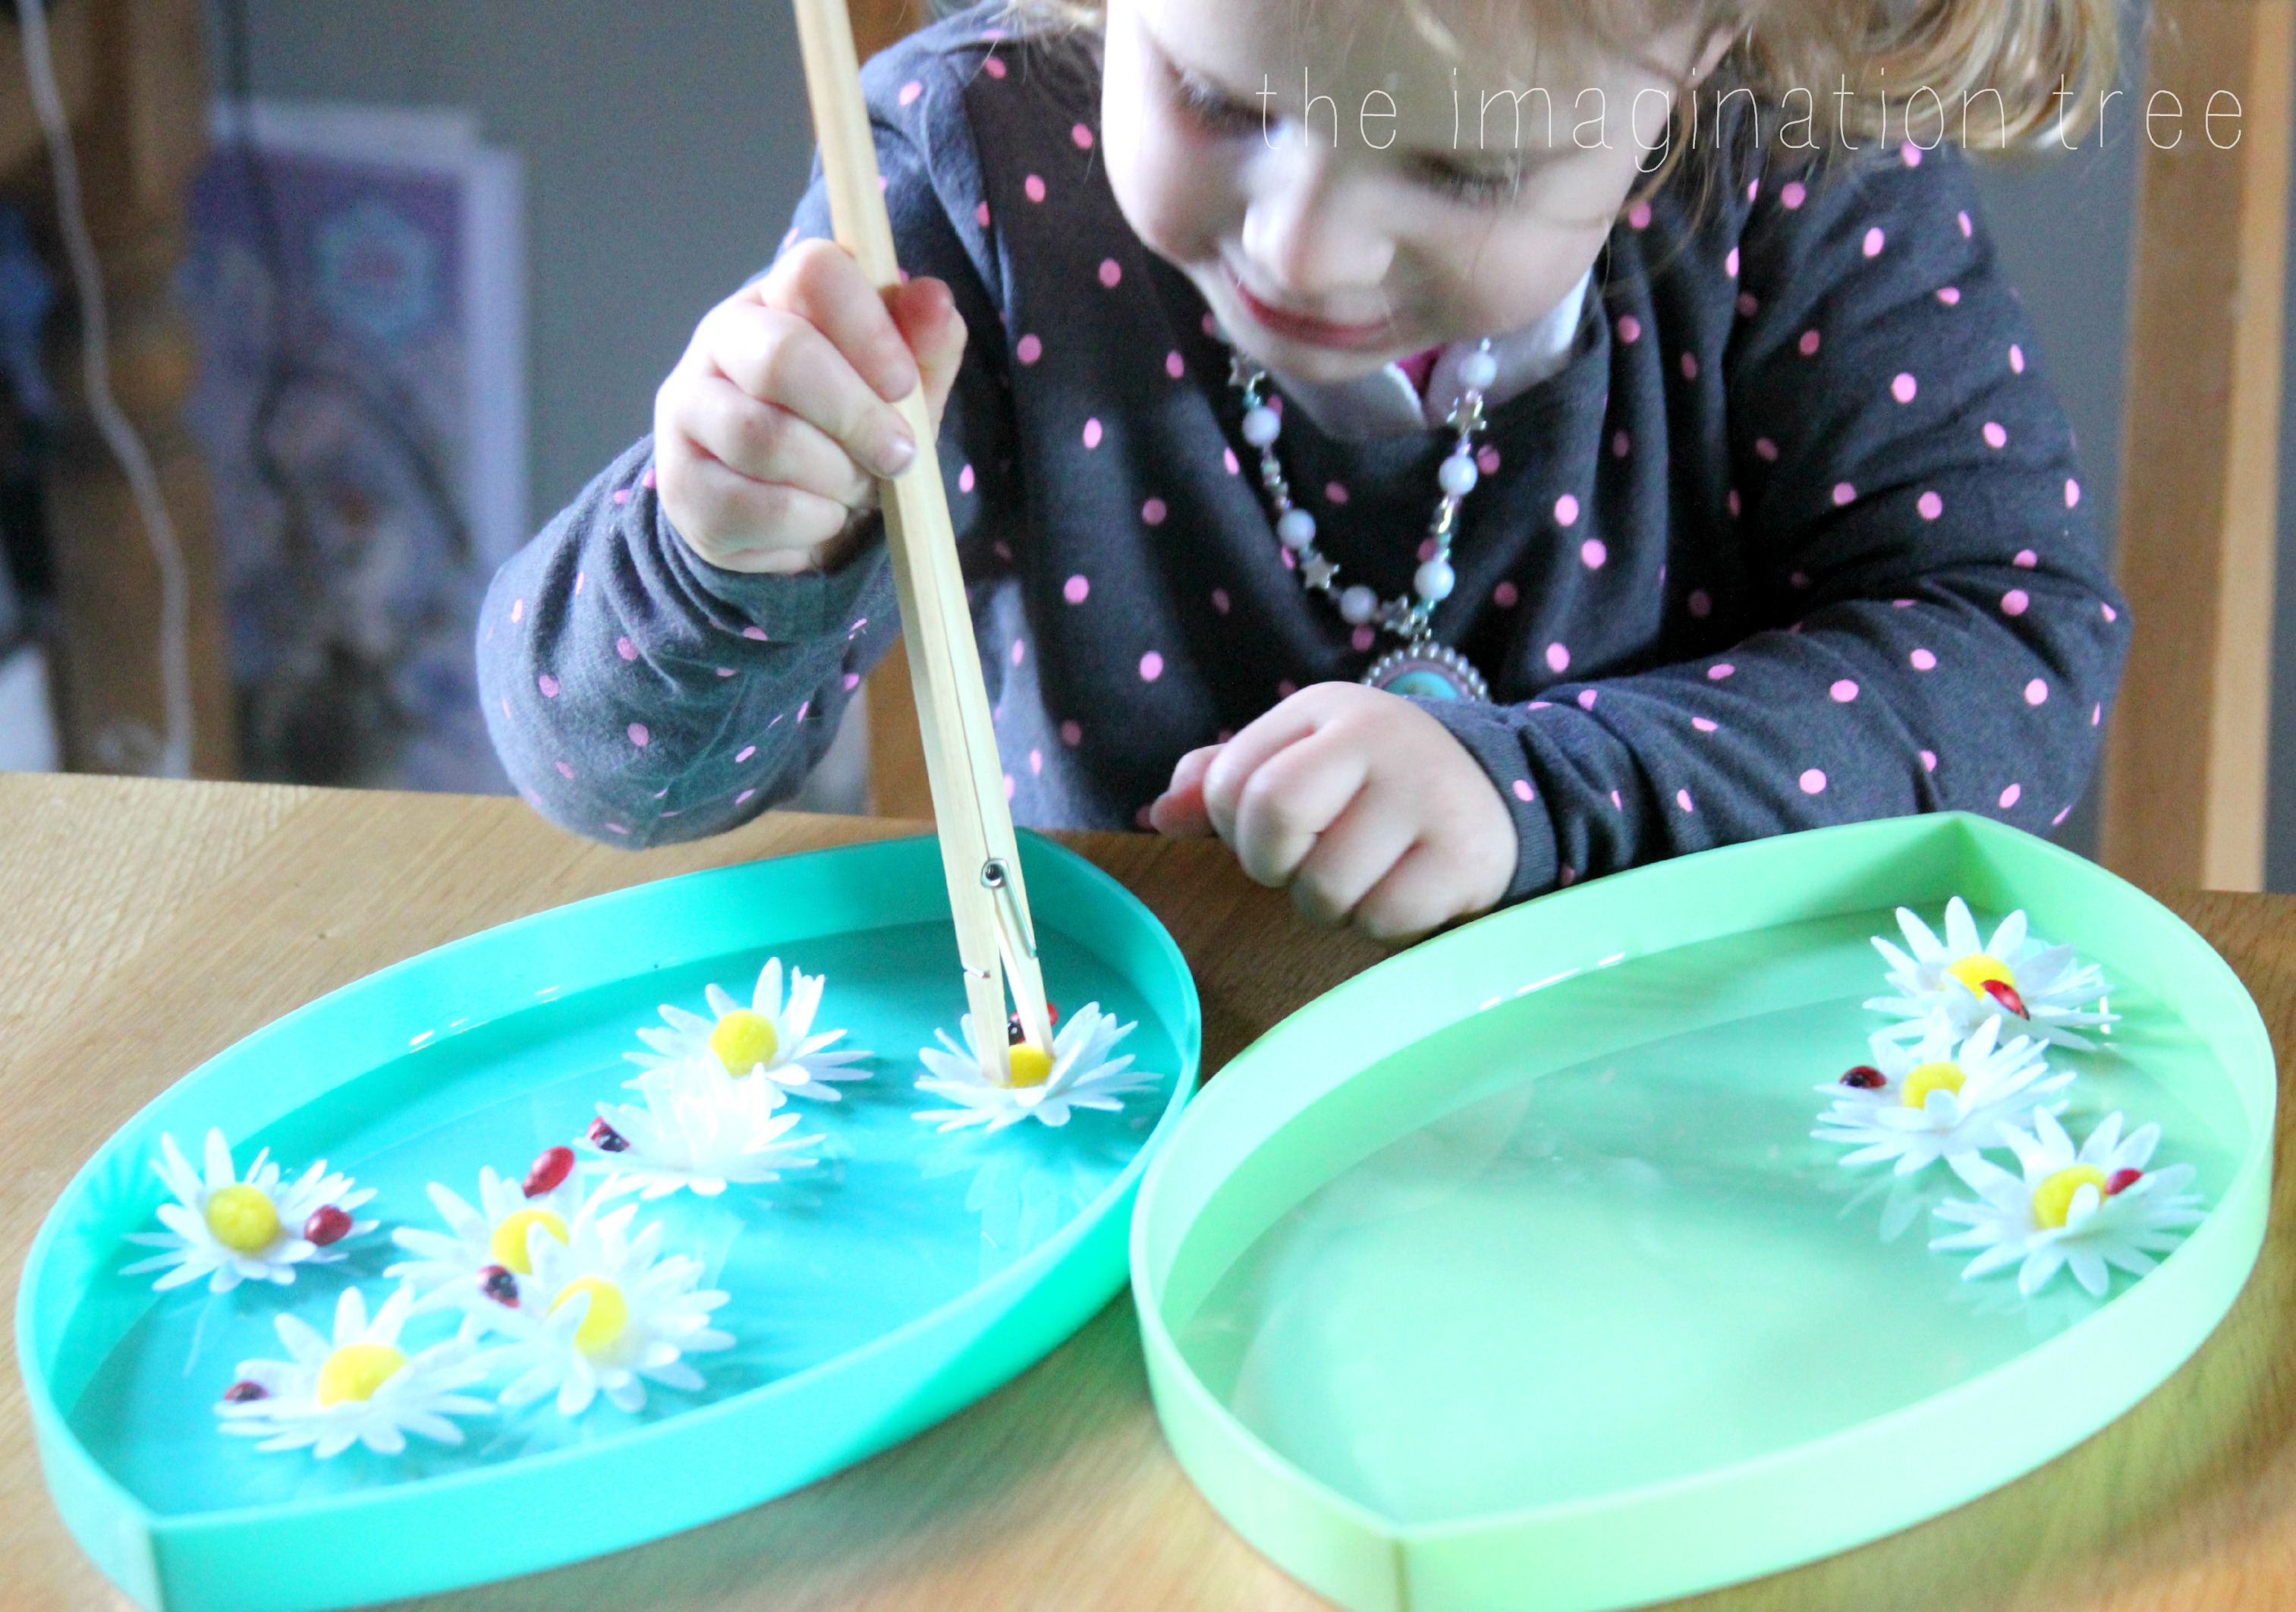 Counting Flowers Fine Motor Skills Activity